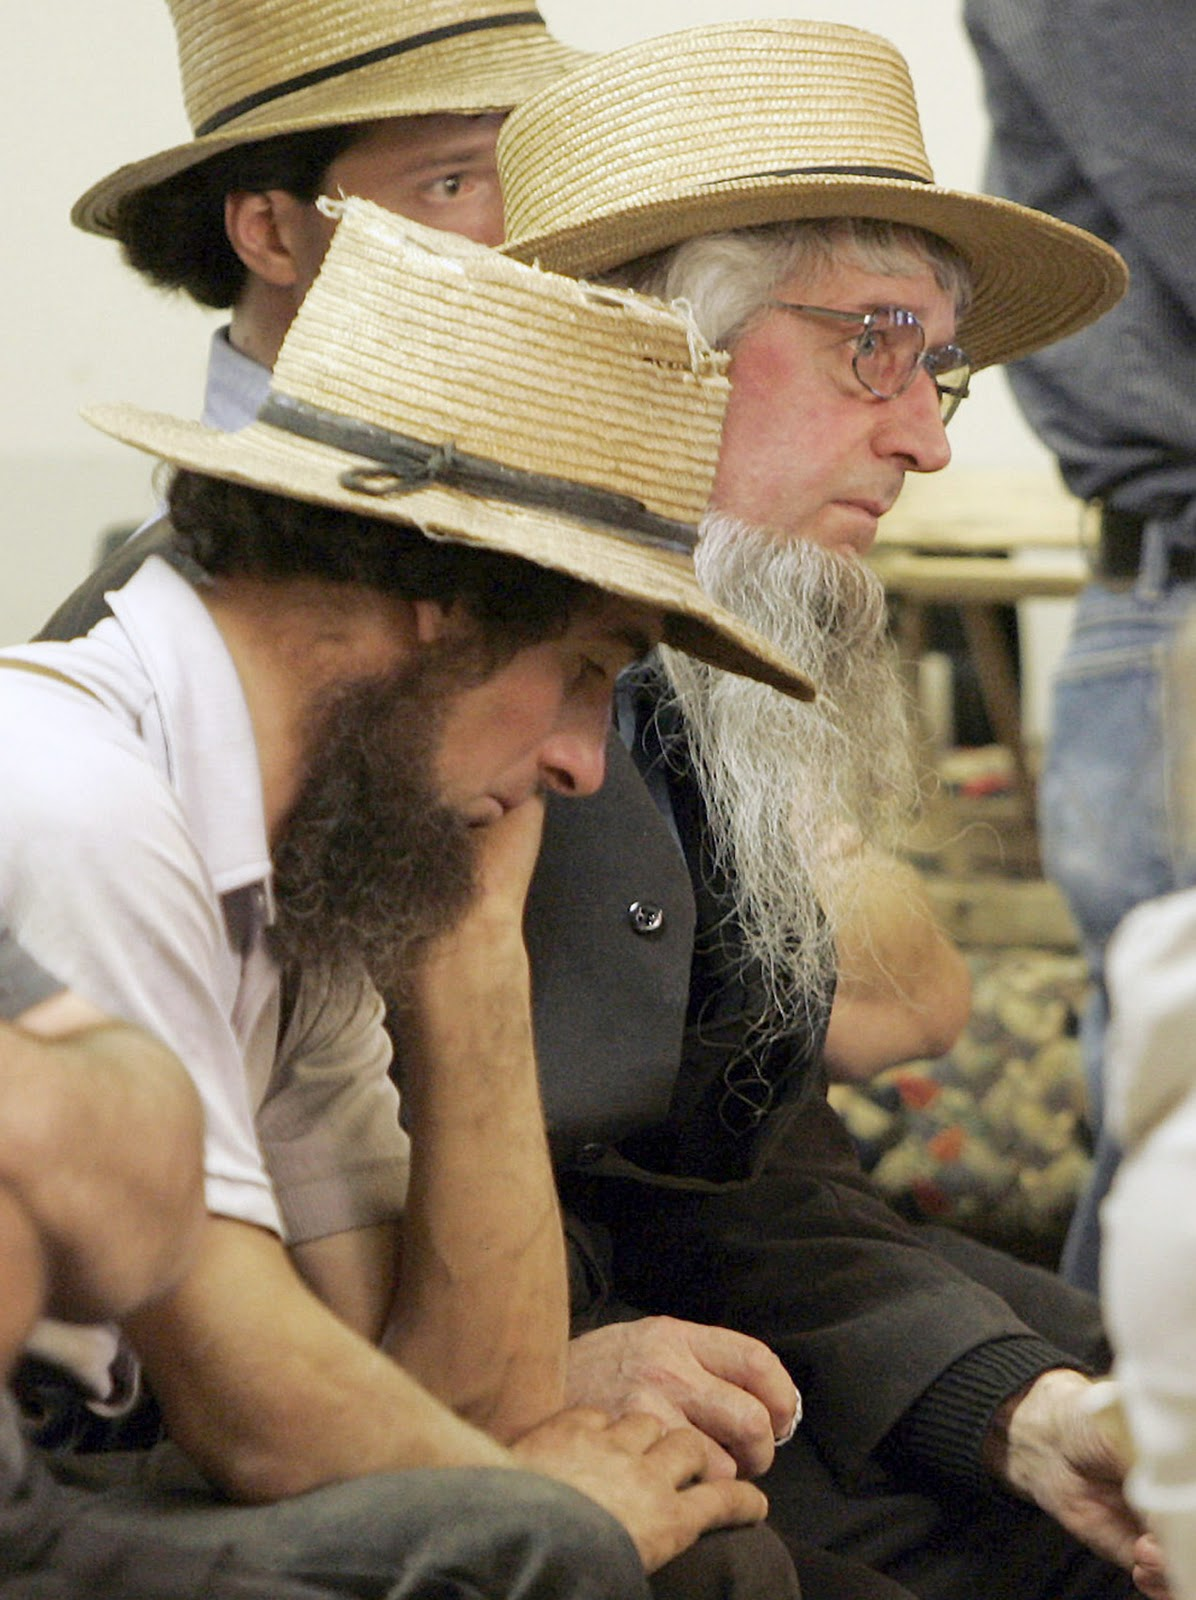 amish culture religion and beliefs